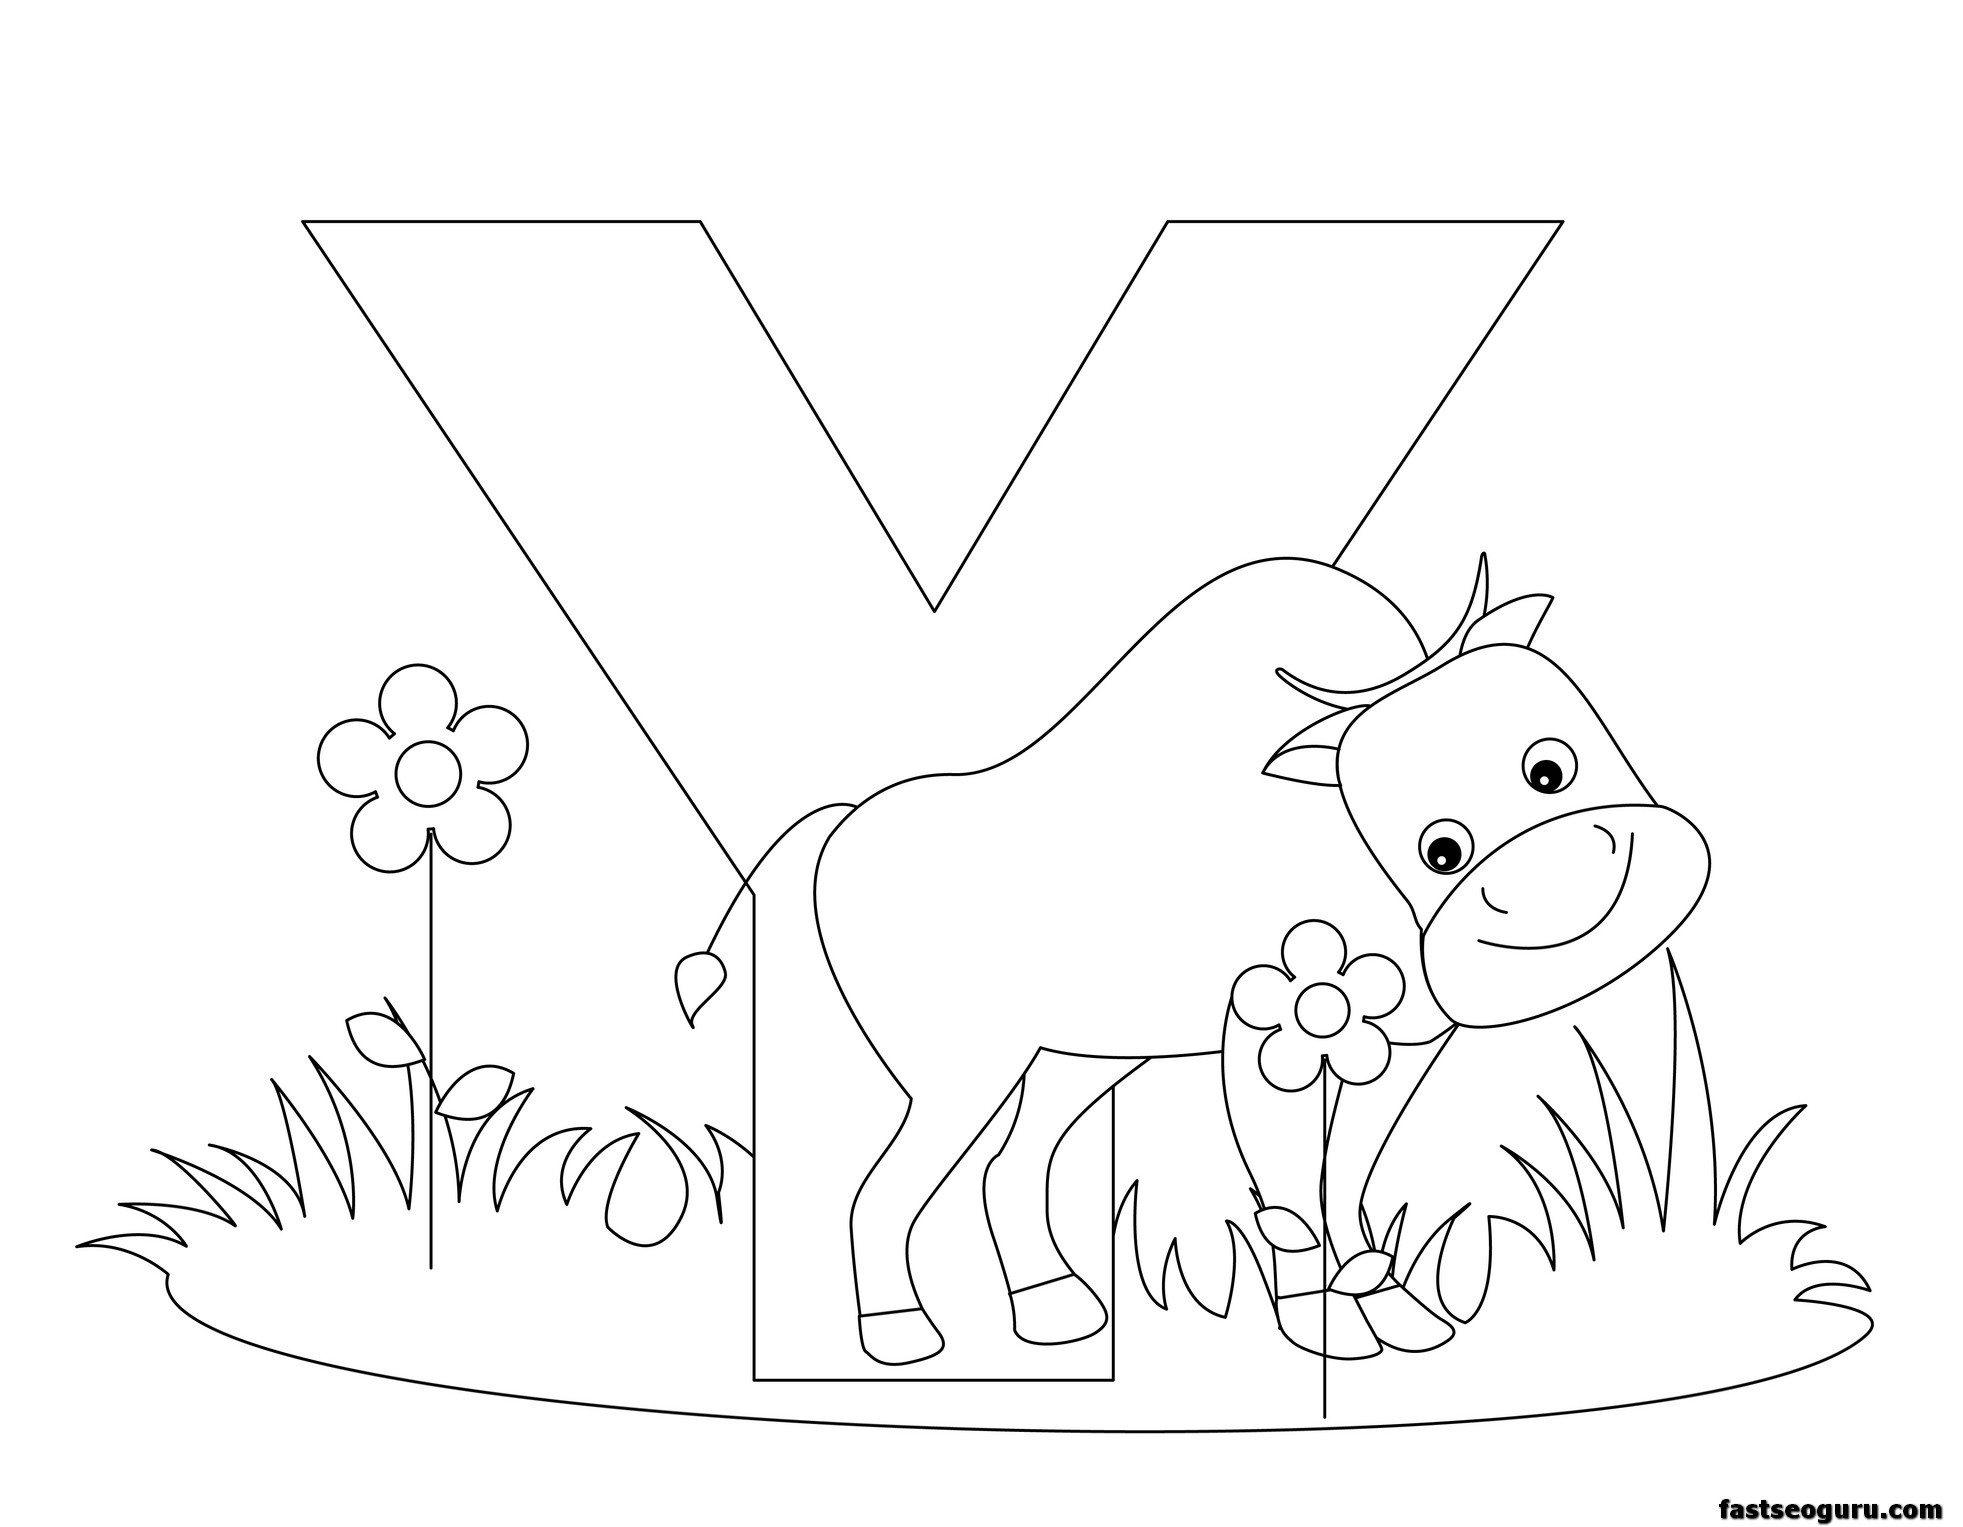 Coloring Pages Yak : Printable animal alphabet worksheets letter y is for yak